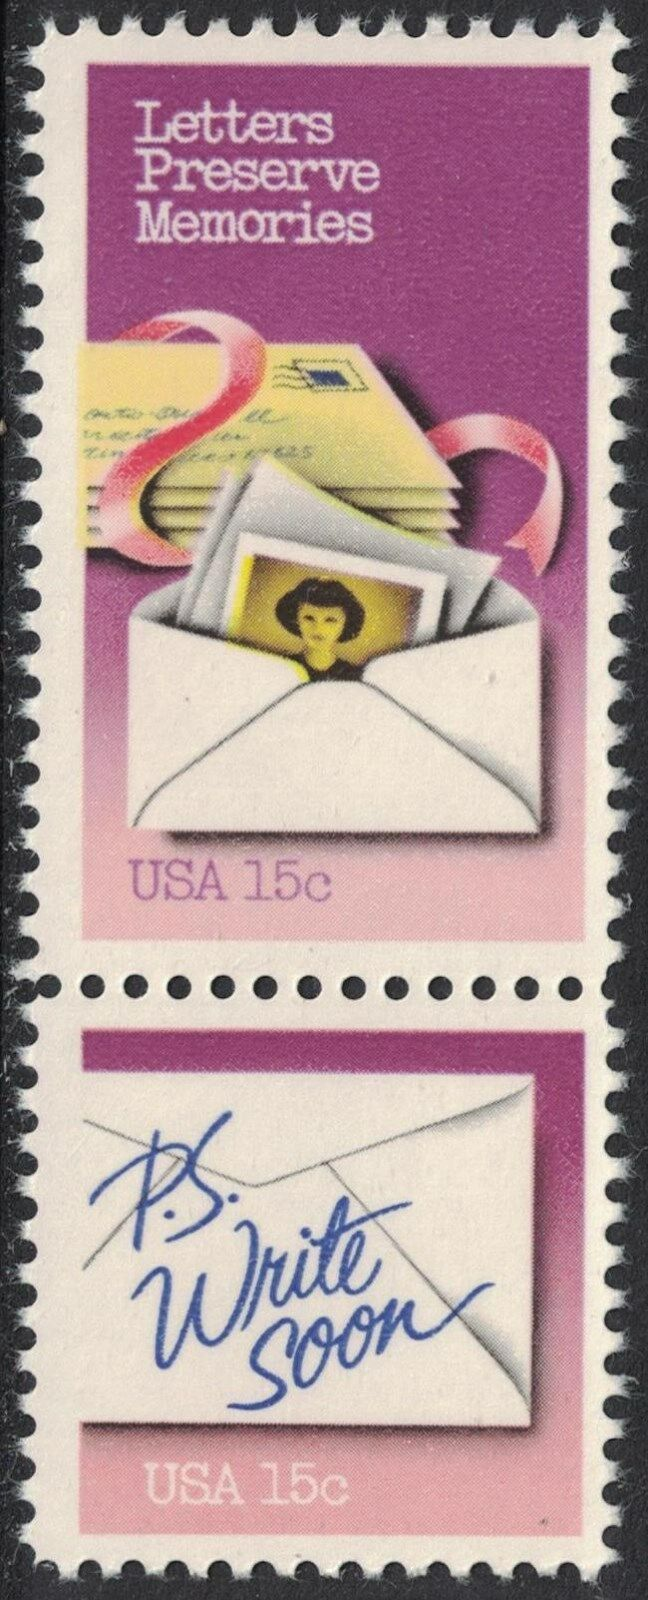 United States - Scott #1805-1806 (1980) Letters Preserve Memories/P.S. Write Soon